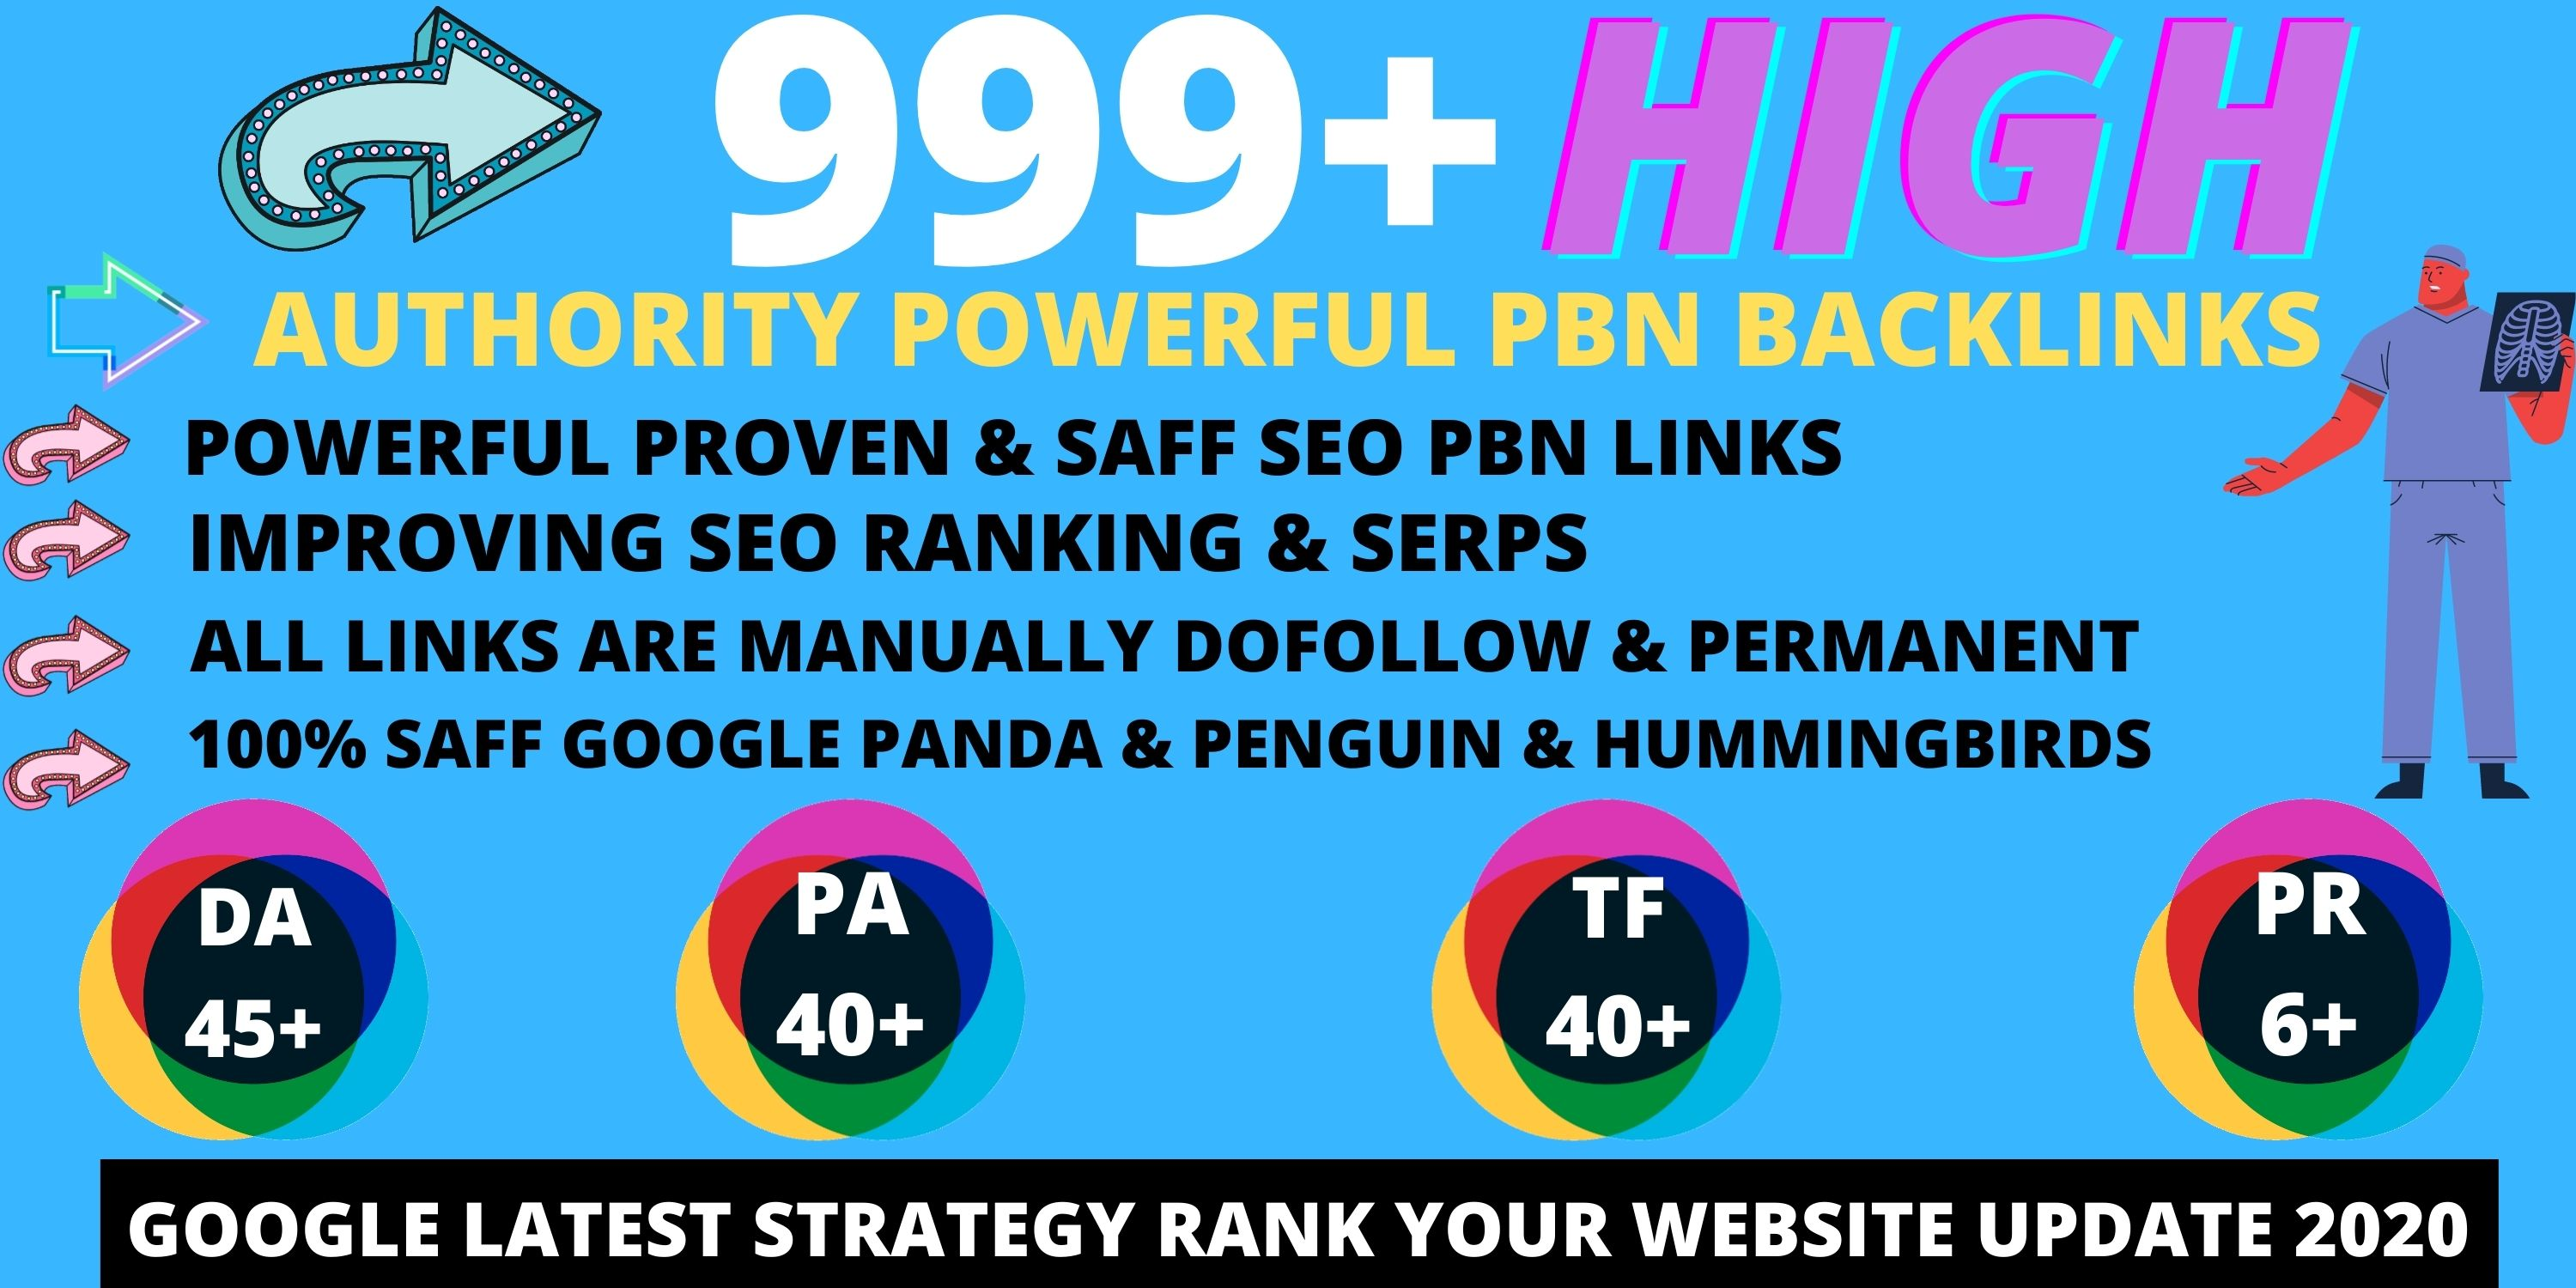 BUY 1 GET 1 Absolutely 999+PBN Backlink in your website with HIGH DA/PA/TF/CF with unique website